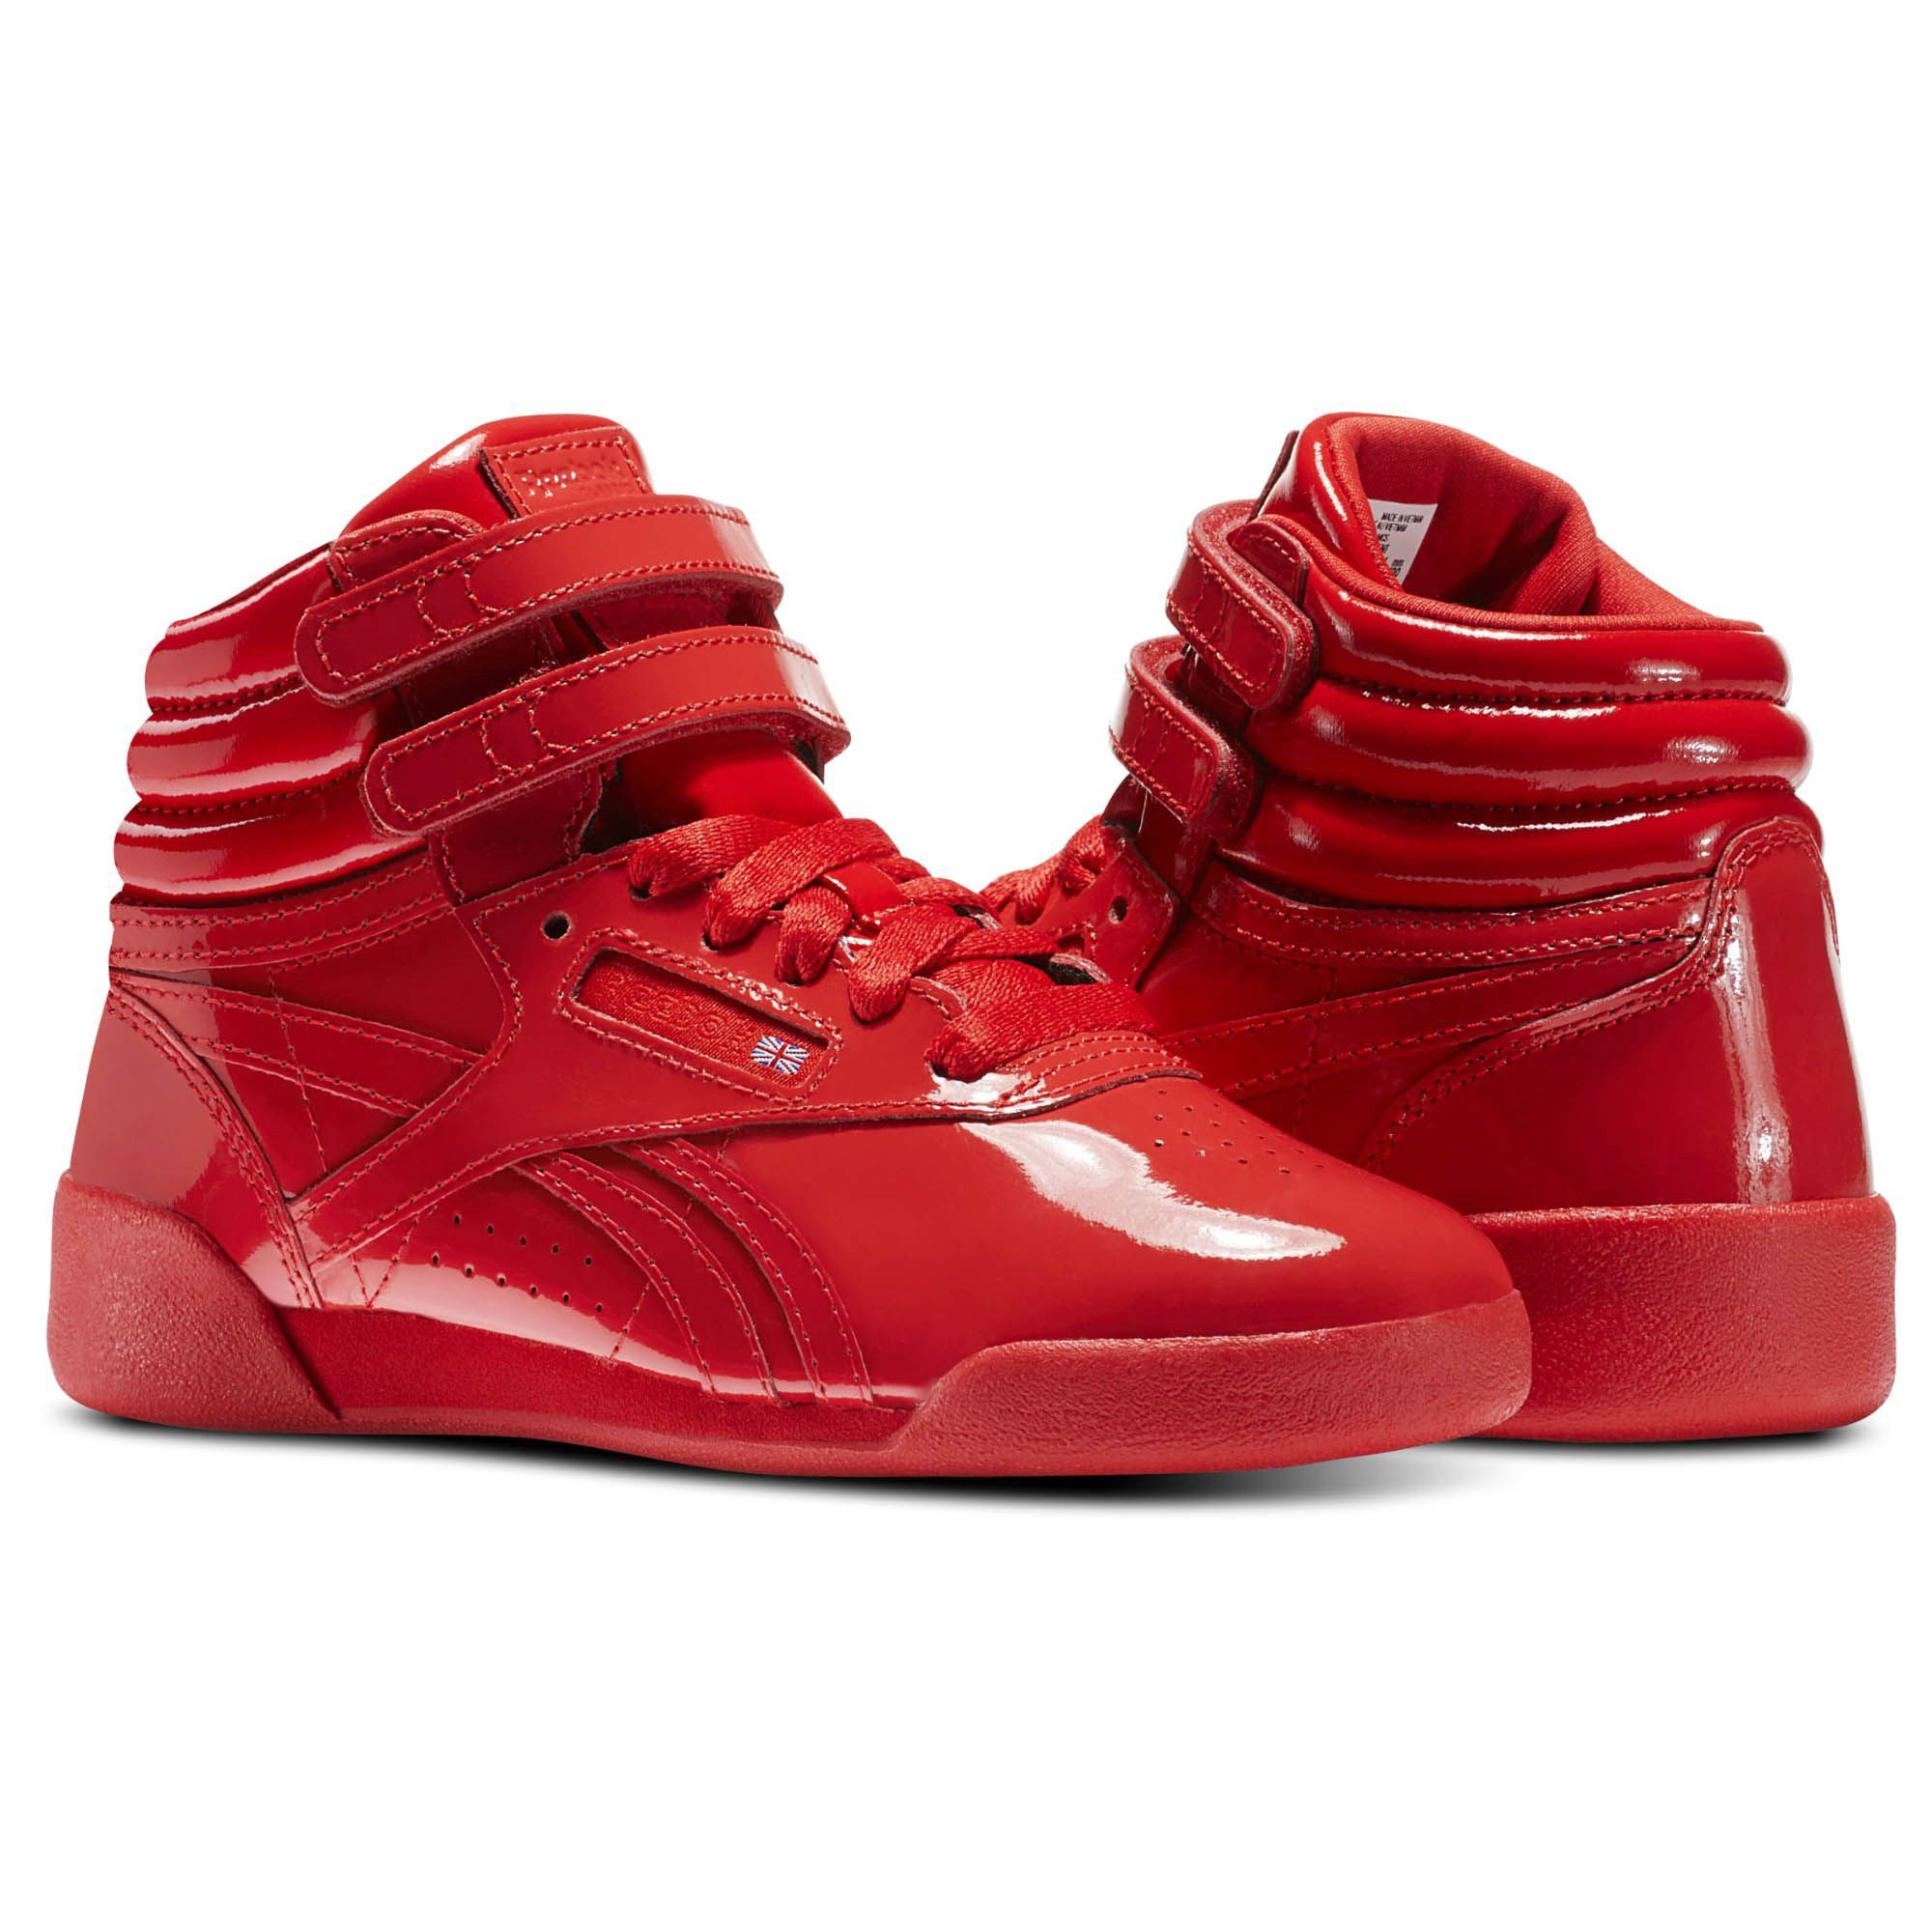 Reebok Freestyle Hi Patent Leather Pre School Red 3